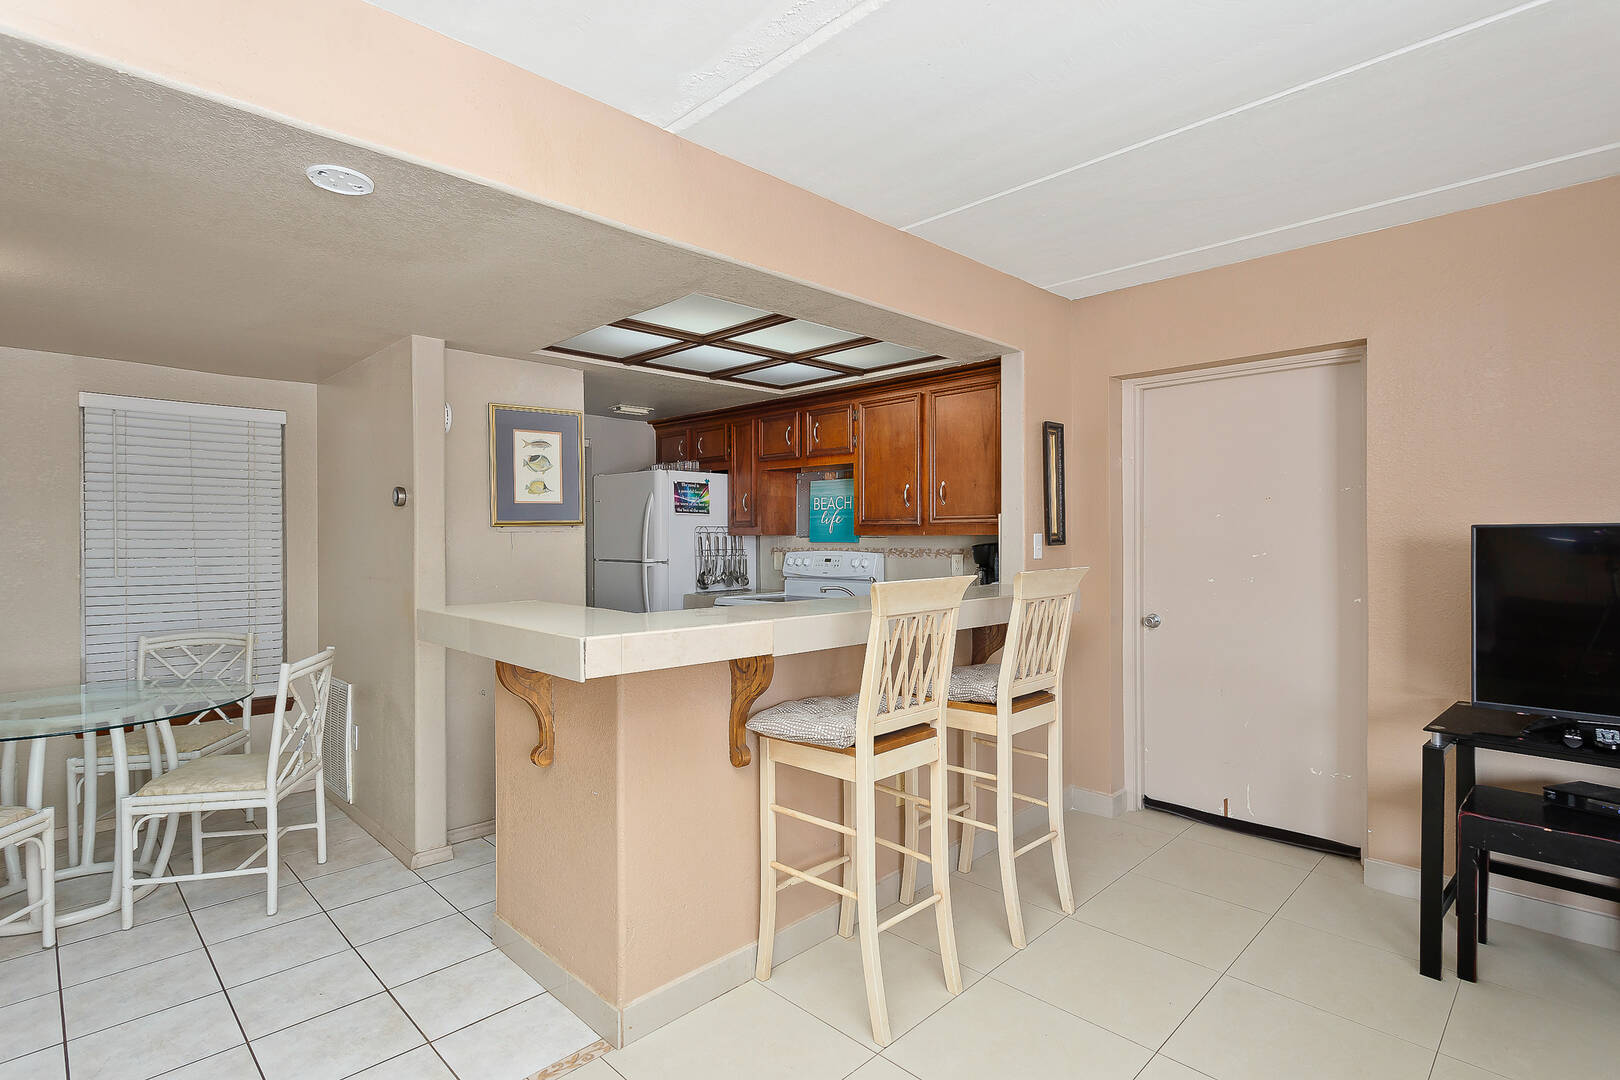 203 W Marlin Street #6 South Padre Island, TX 78597